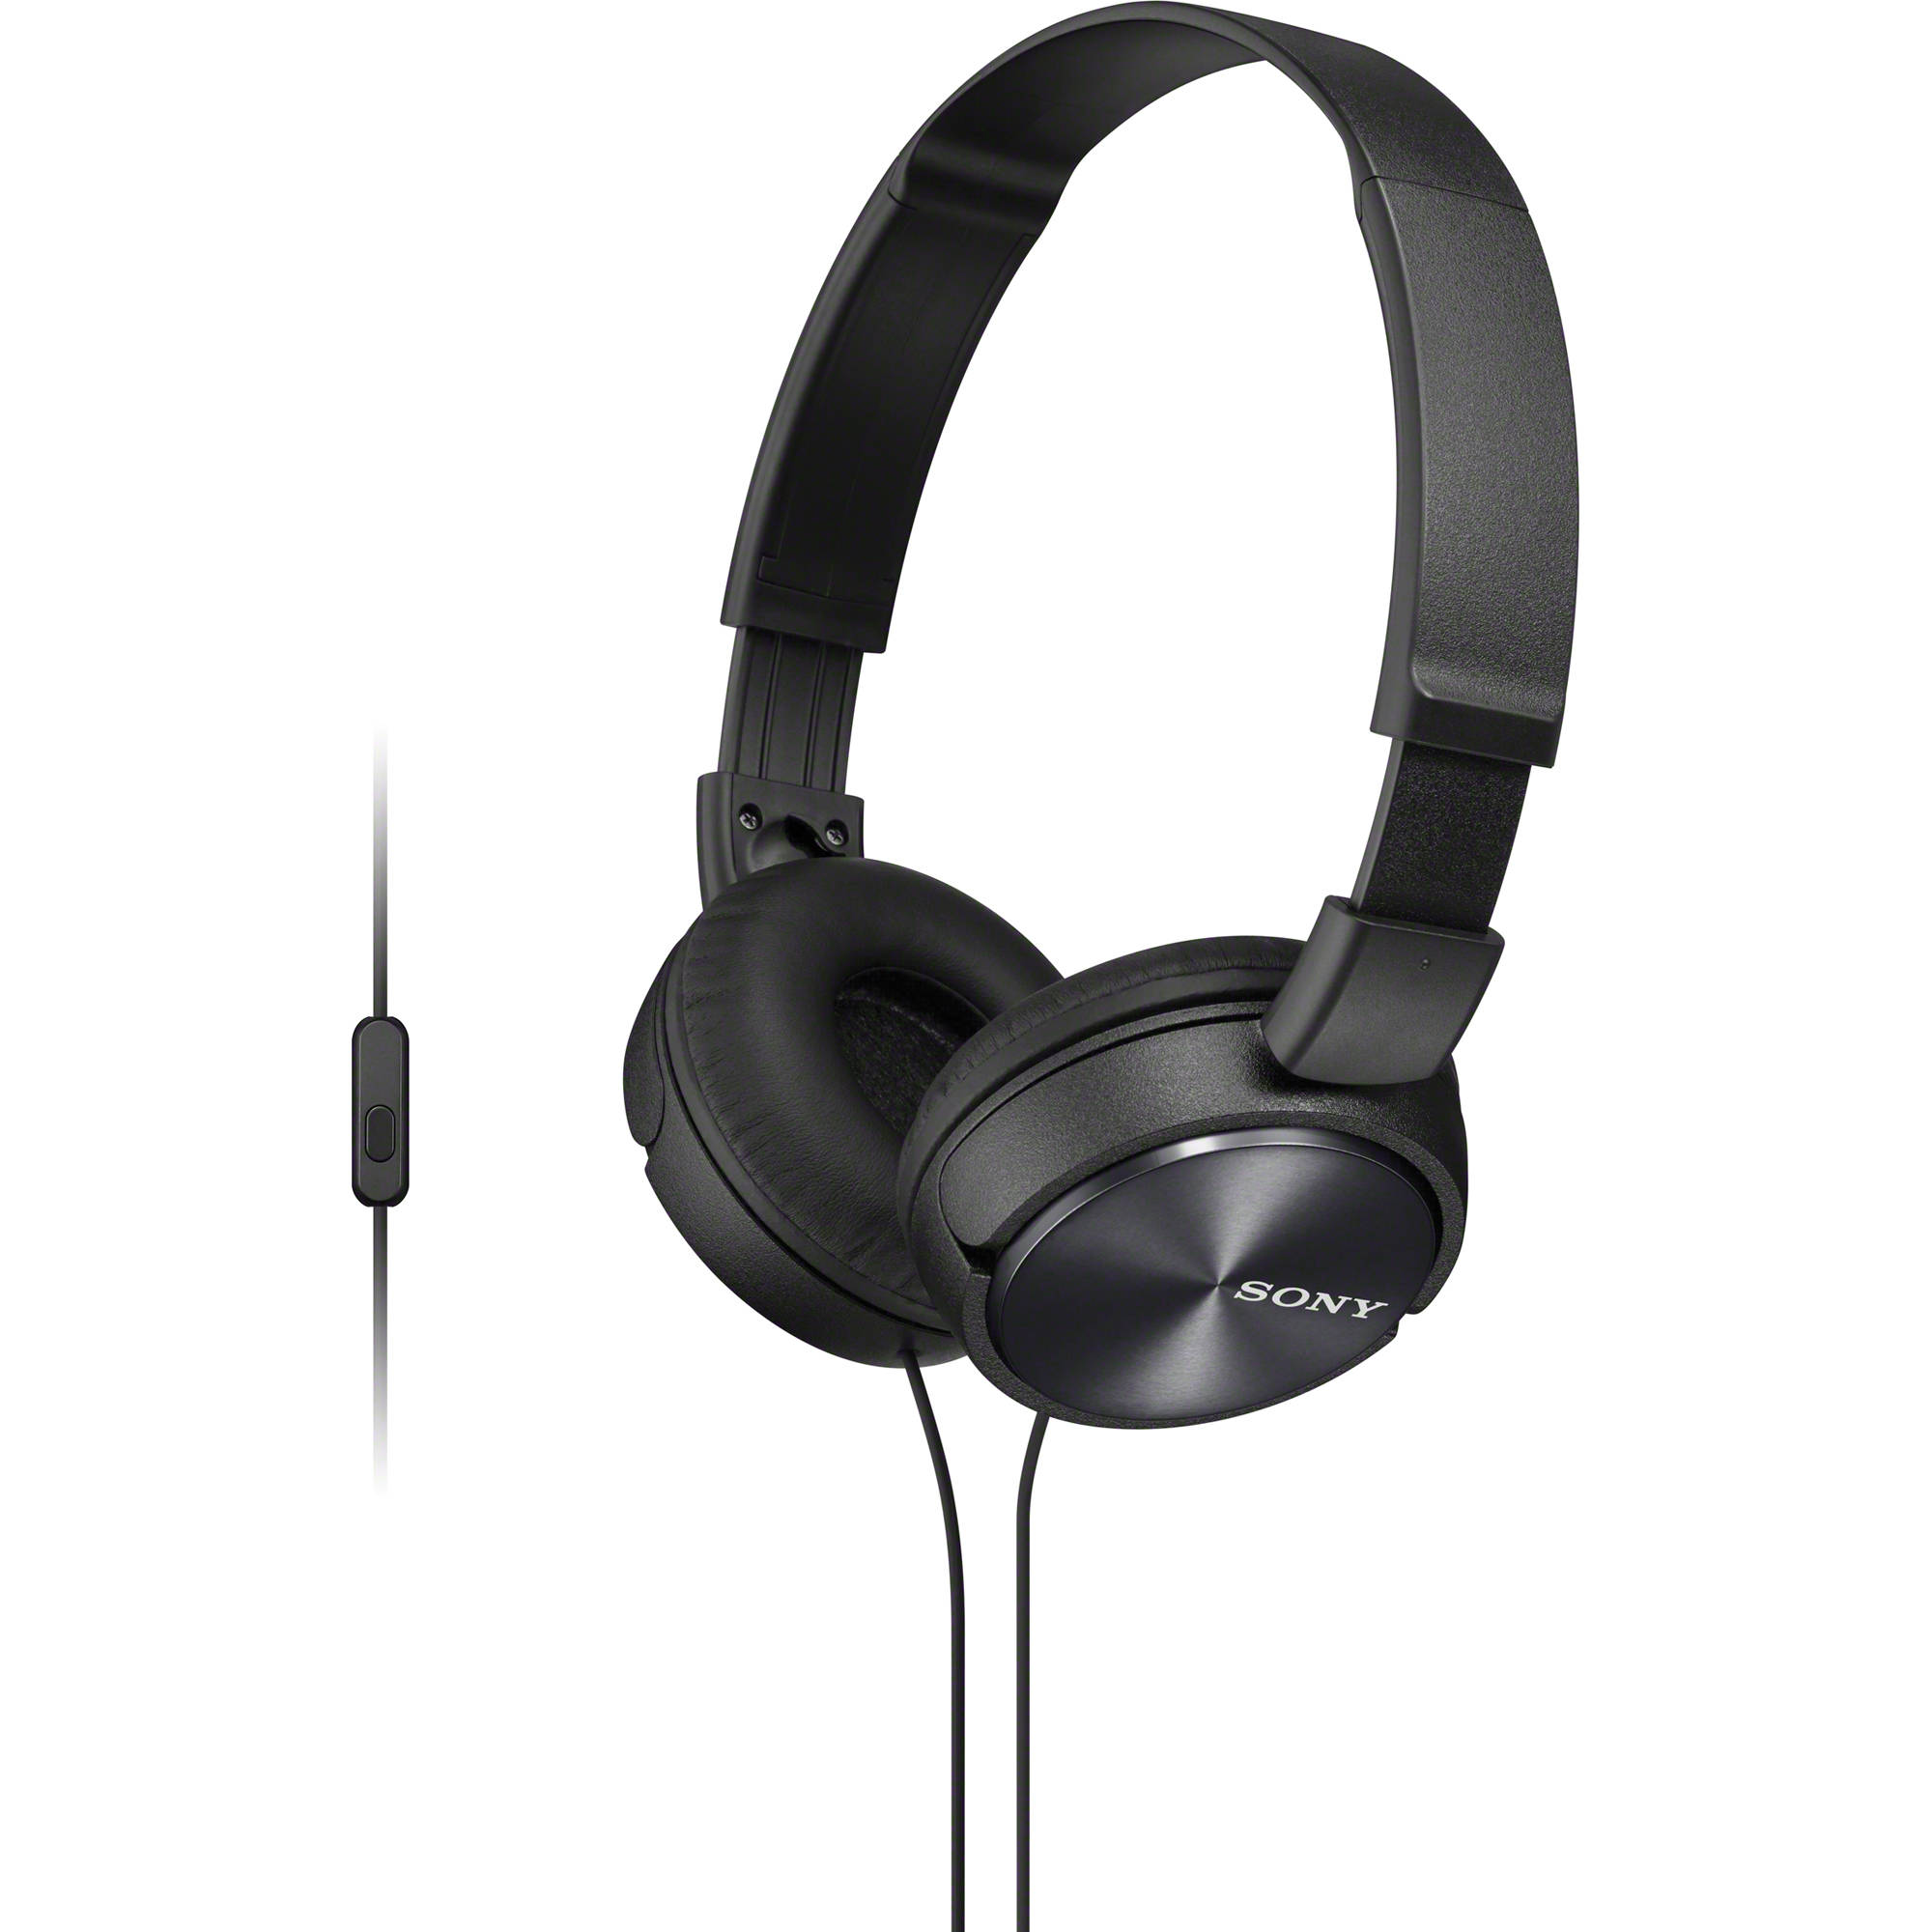 sony zx series stereo headphones review